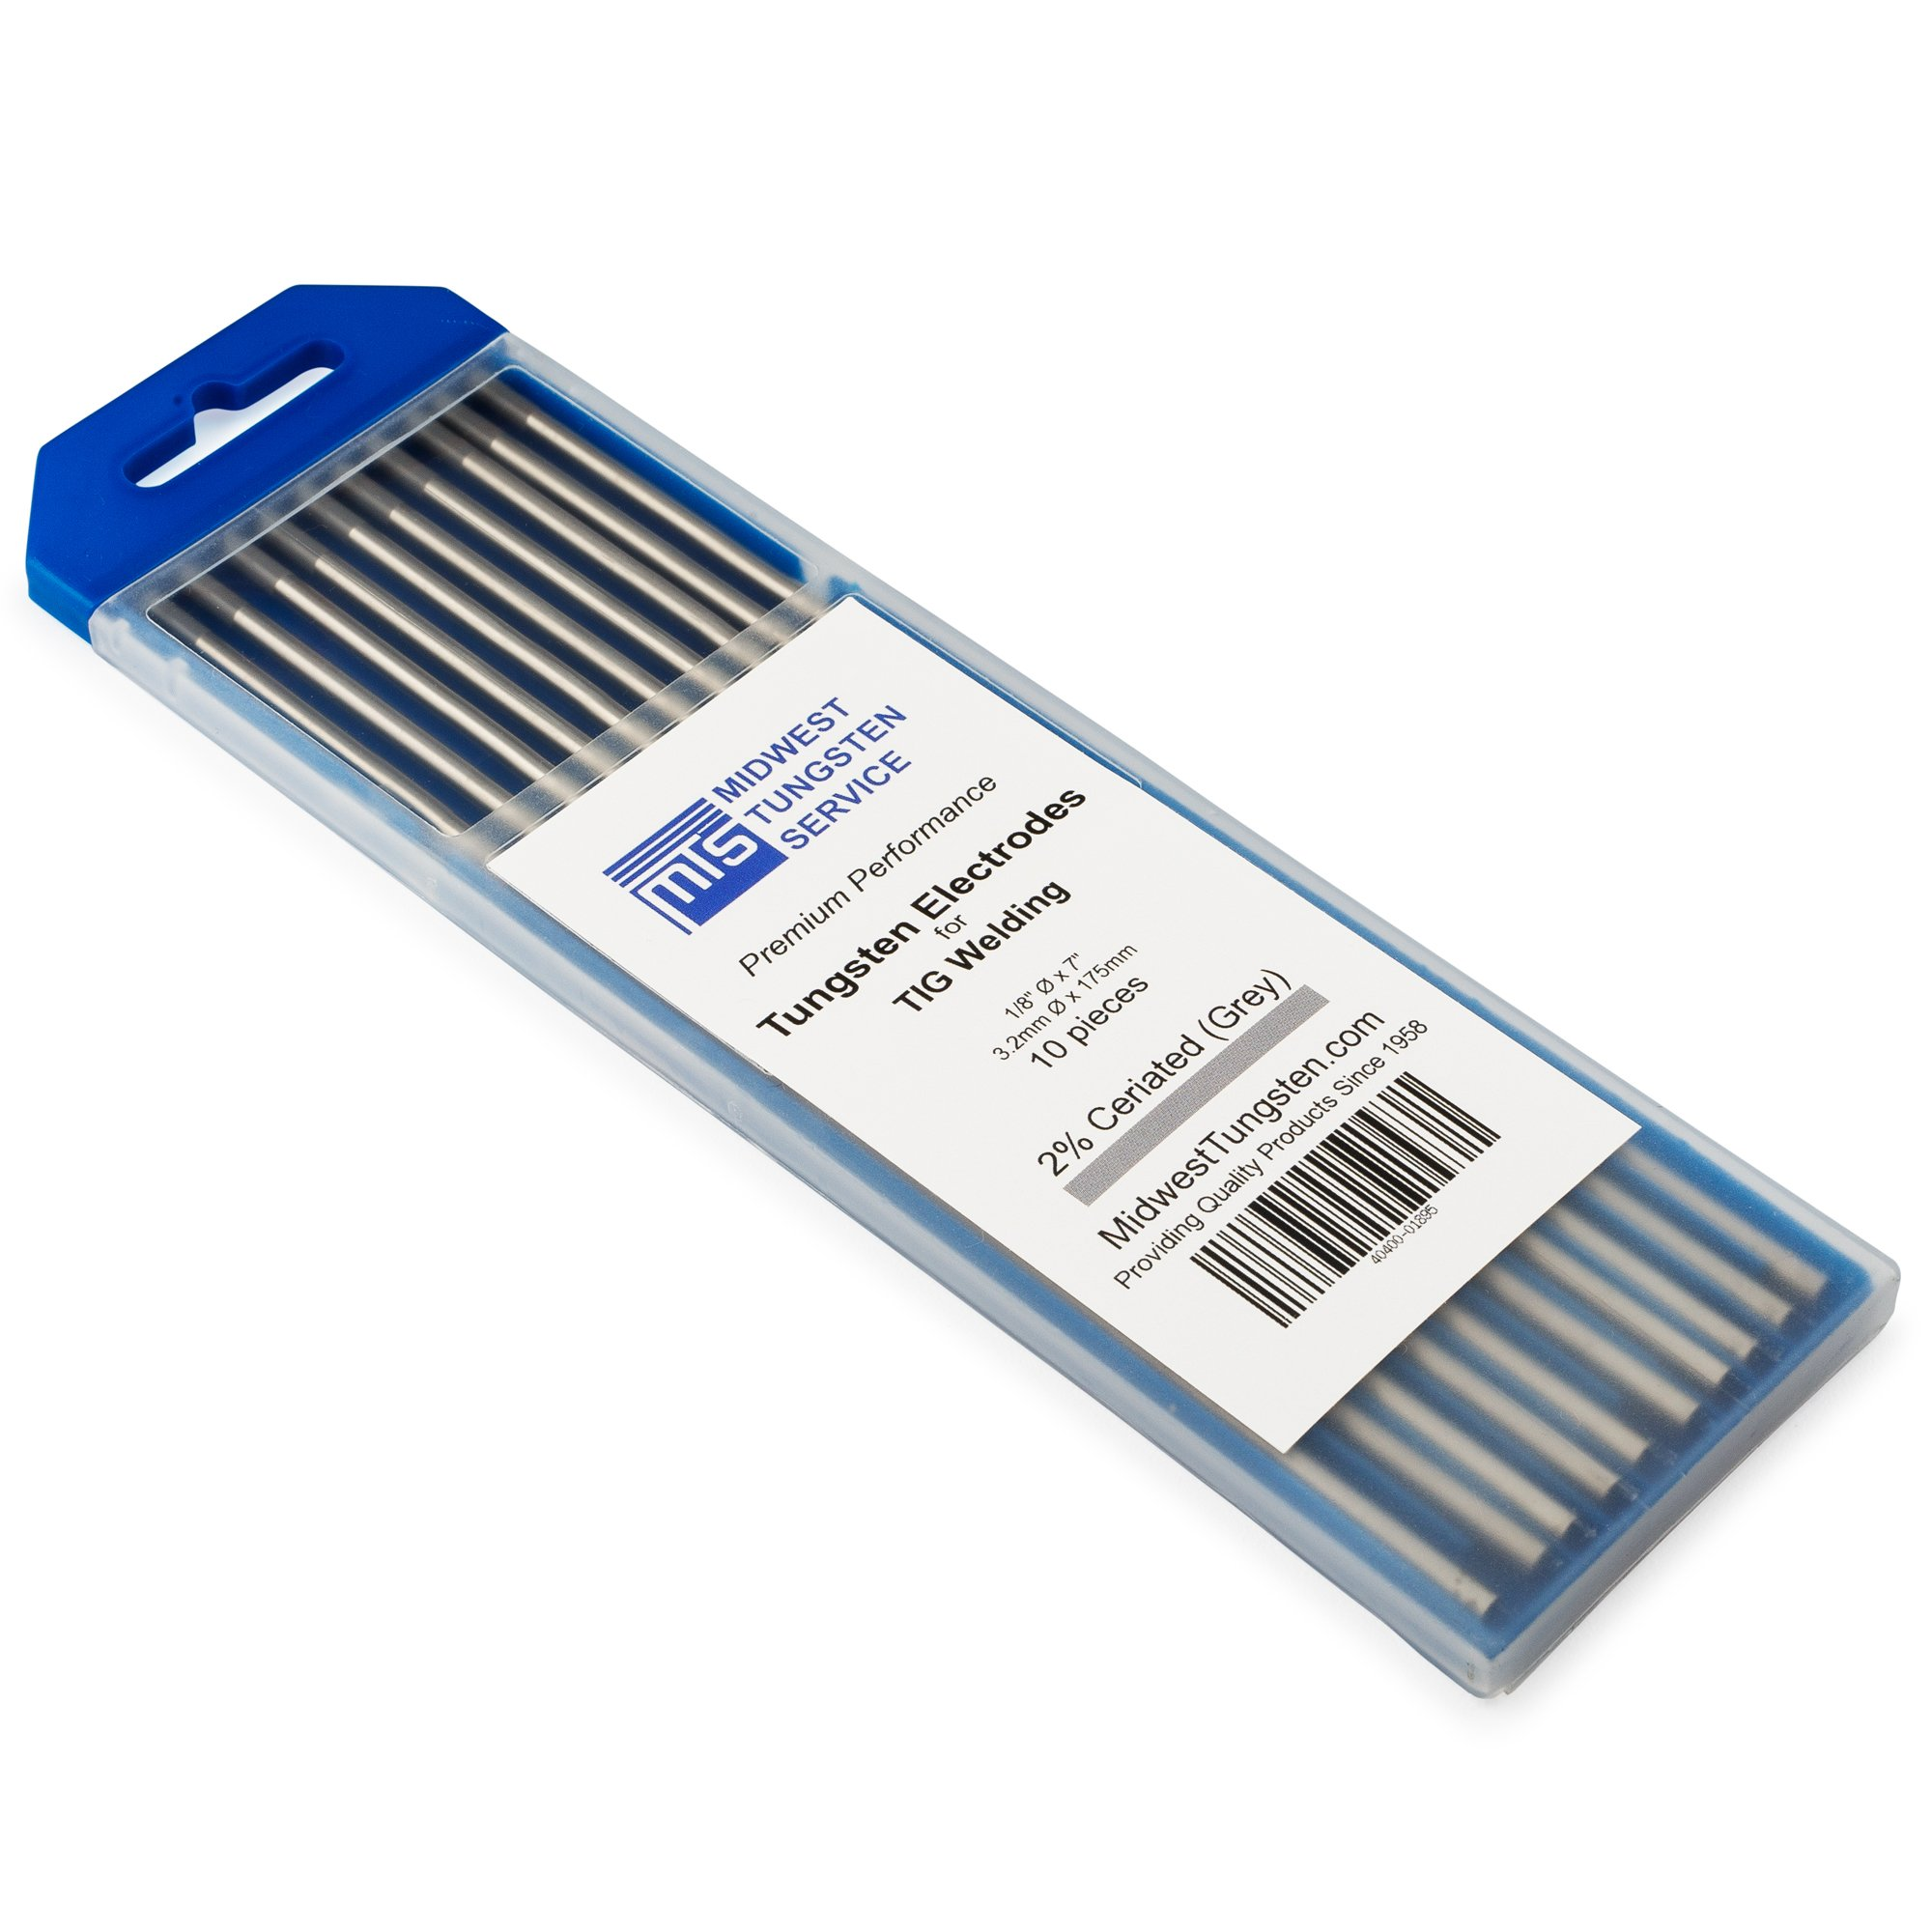 TIG Welding Tungsten Electrodes 2% Ceriated 1/8'' x 7'' (Grey, WC20) 10-Pack by Midwest Tungsten Service